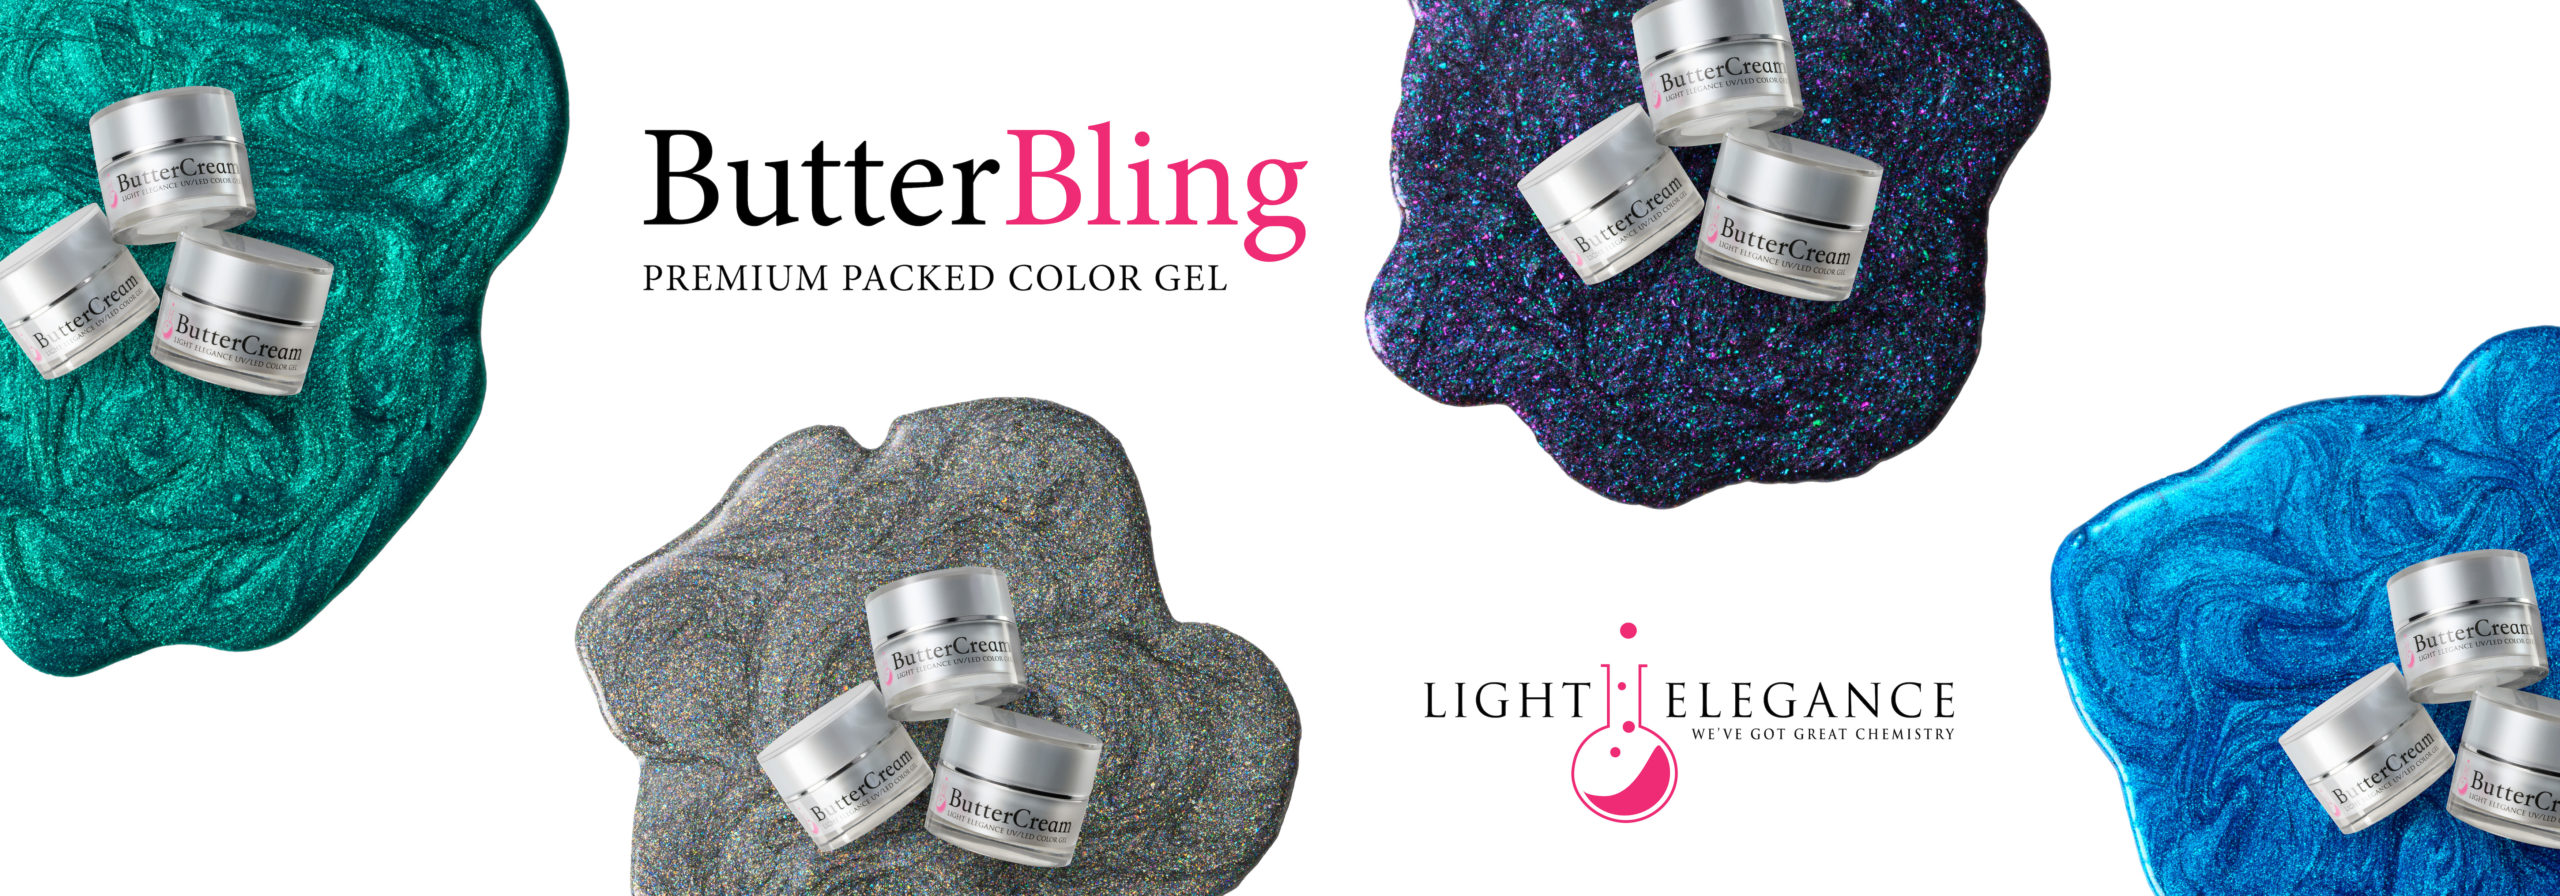 WB_Banner_ButterBling